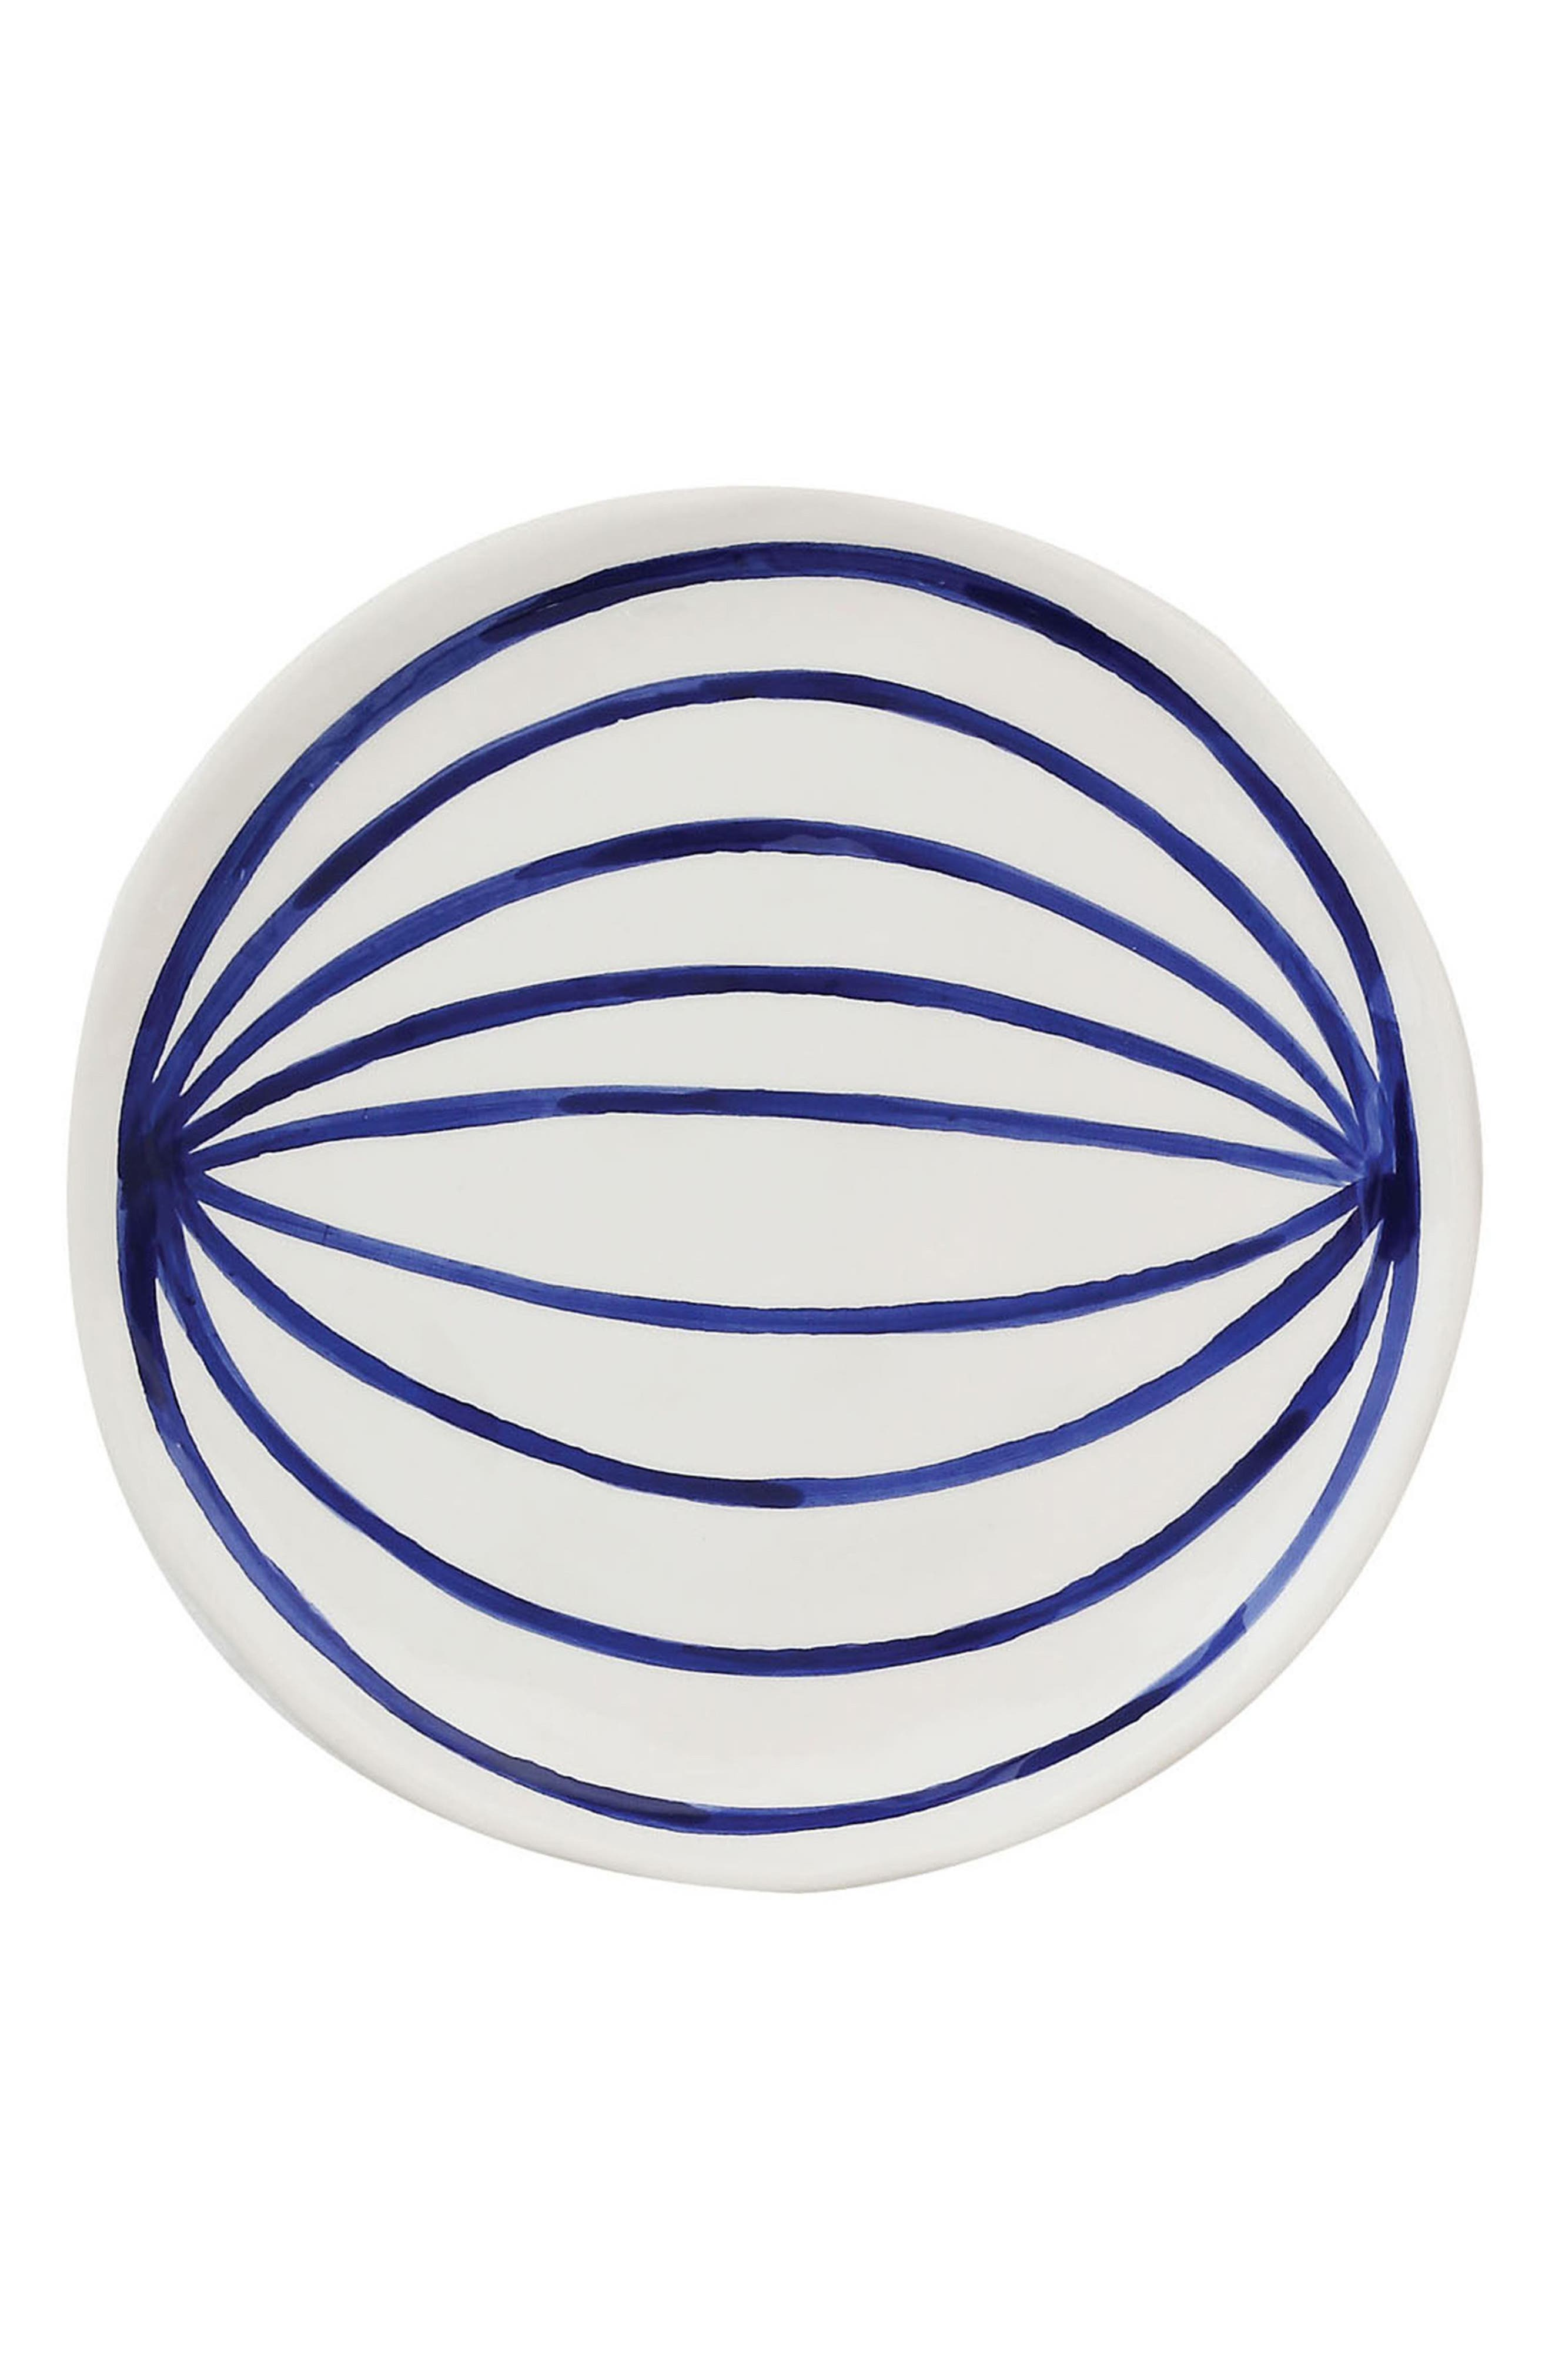 Hand Painted Ceramic Plate,                         Main,                         color, Blue